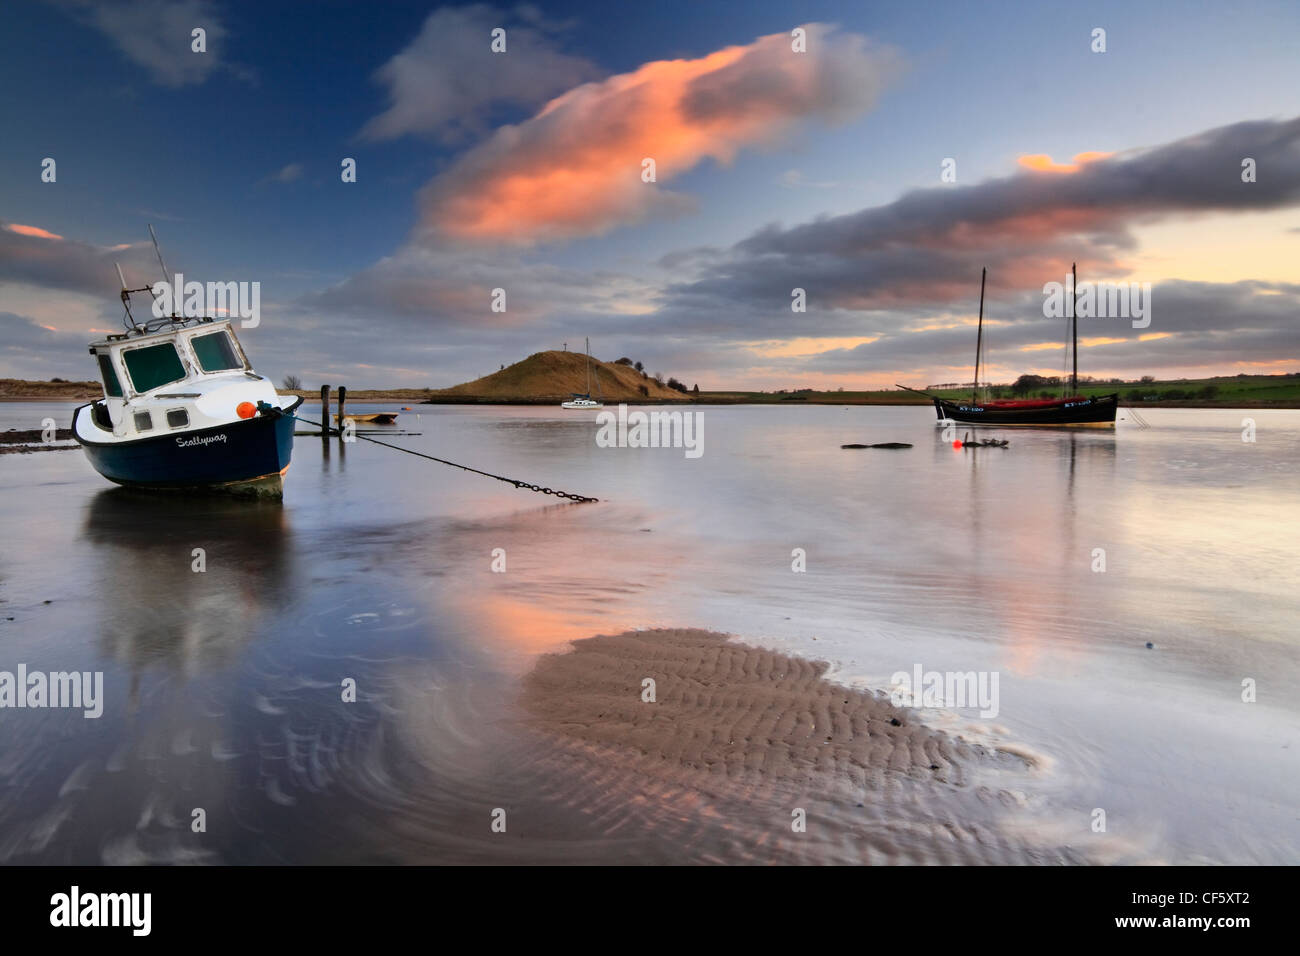 An old fishing boat moored in Alnmouth estuary at low tide. Stock Photo